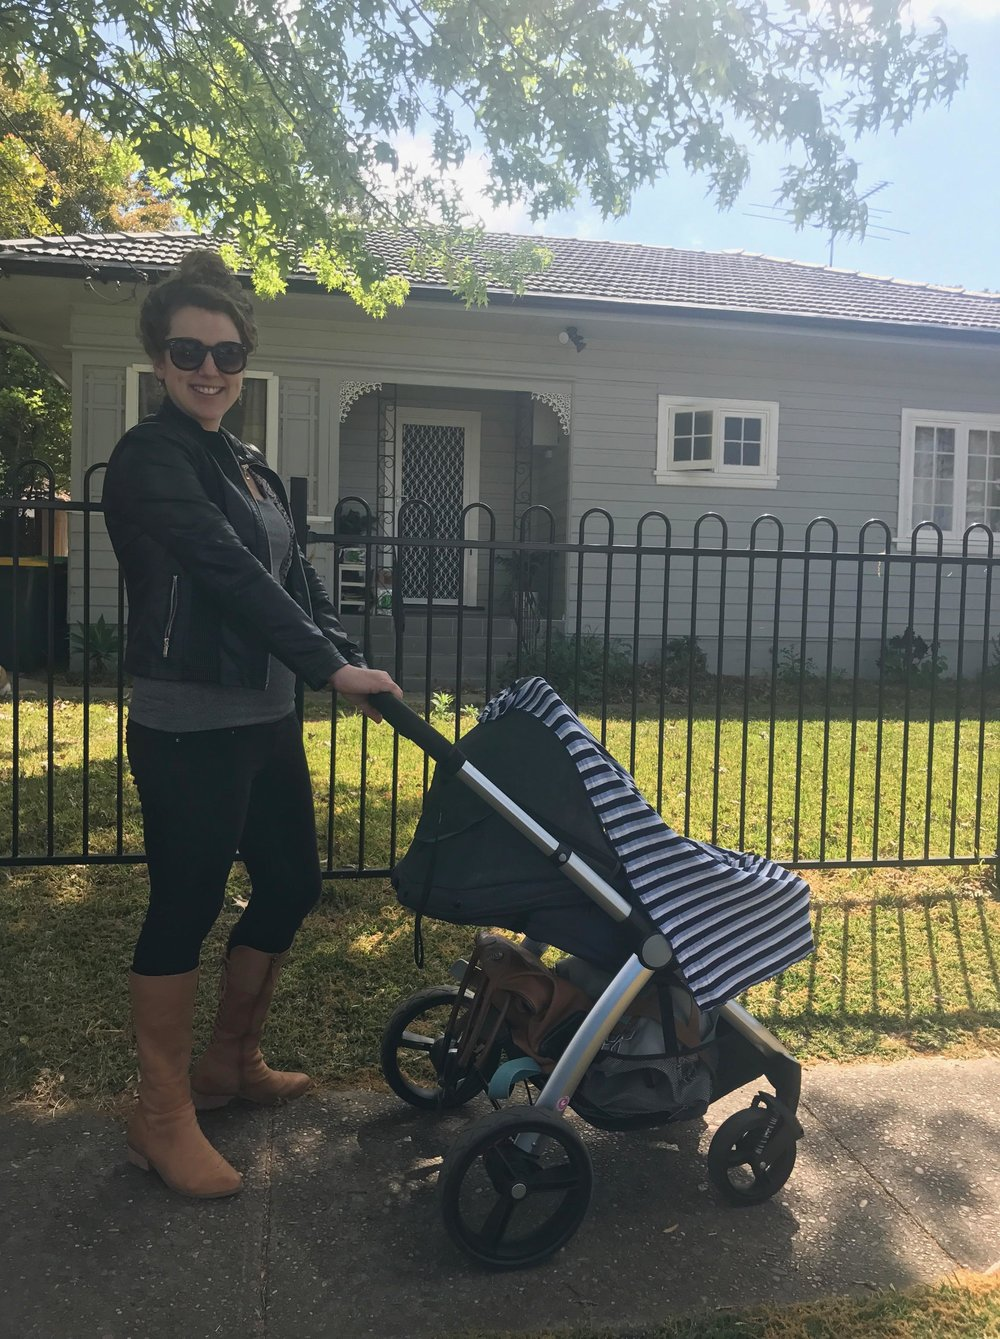 Rocking a like new stroller, minus the price tag!